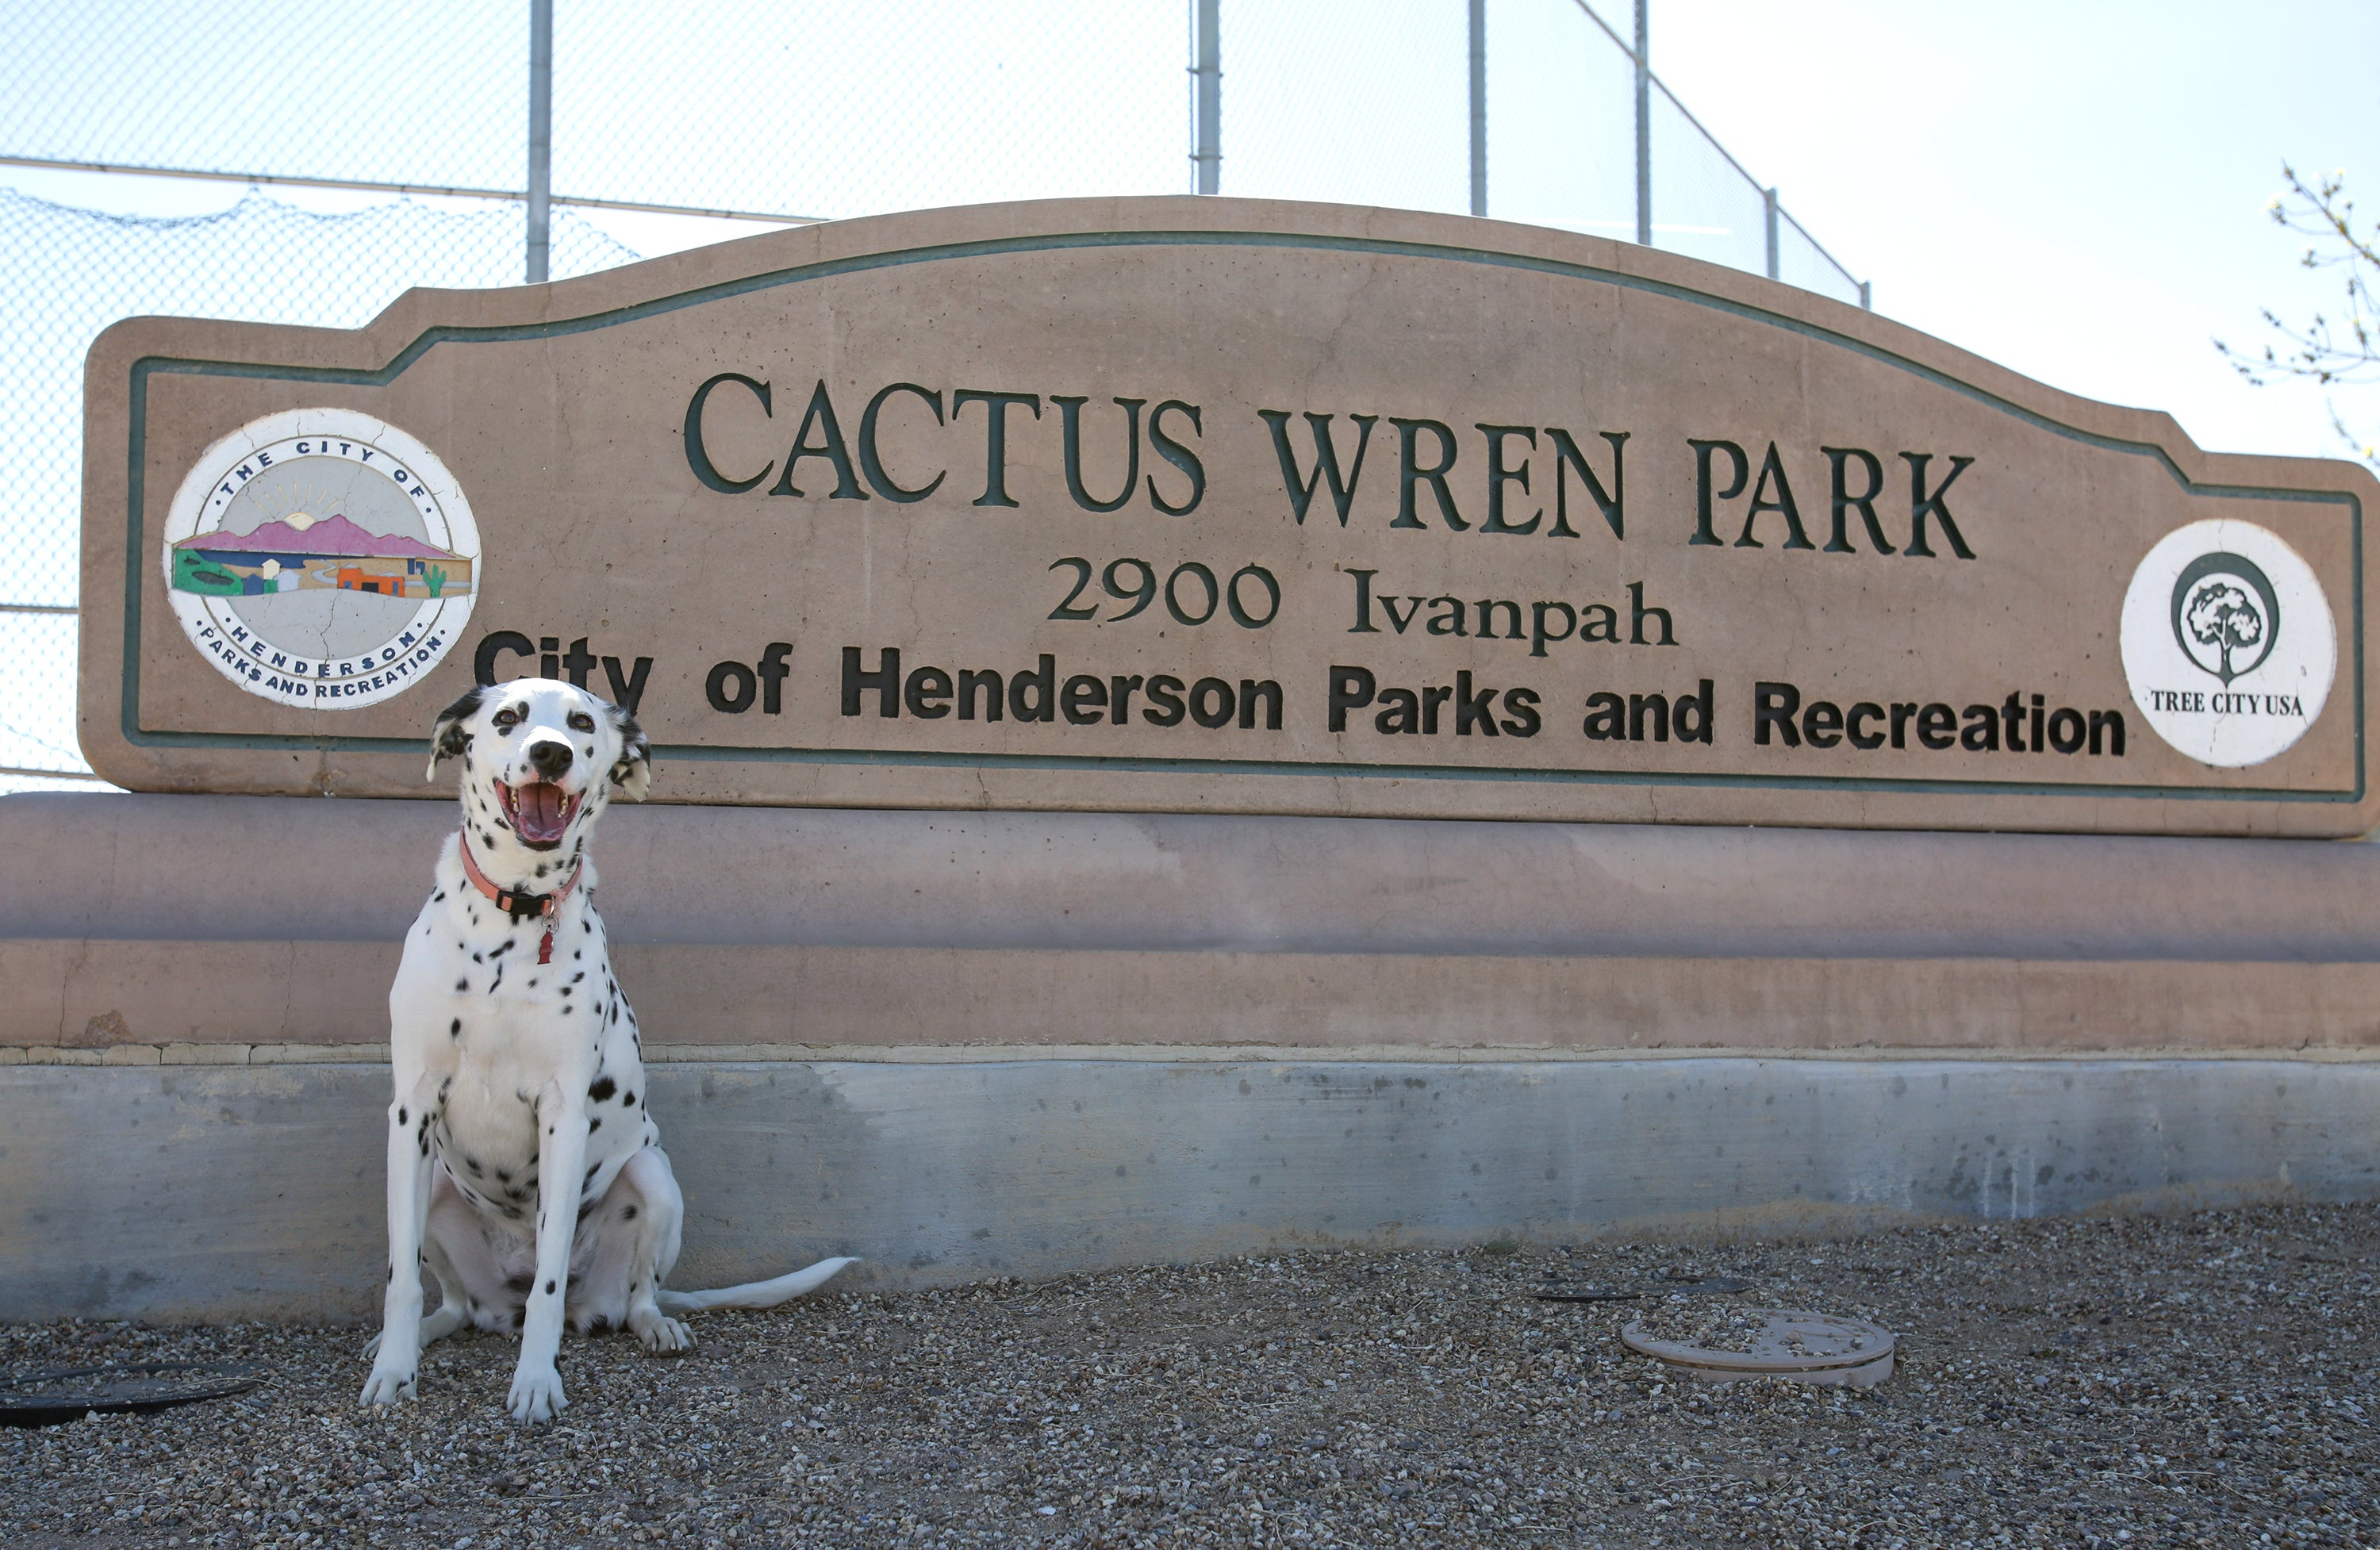 Las Vegas Dog Park Reviews: Cactus Wren Park